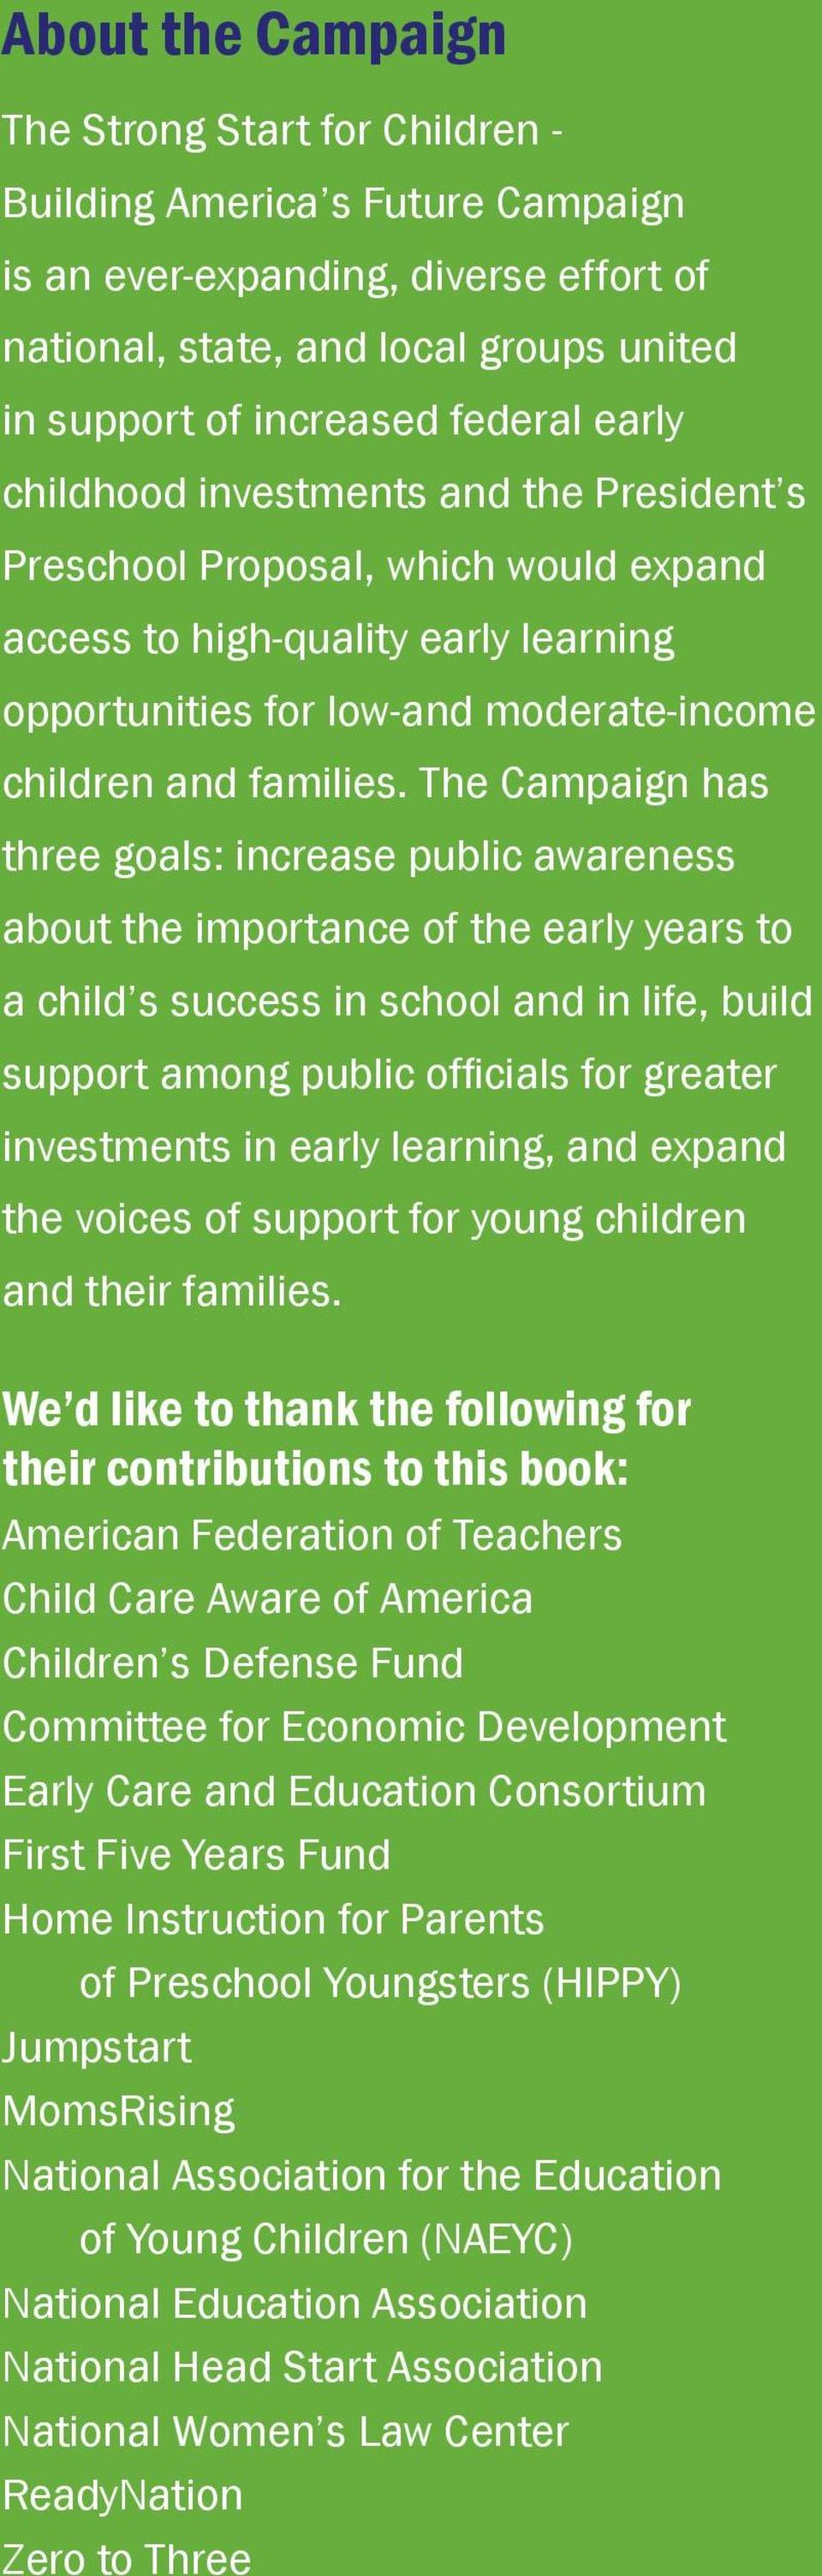 The Campaign has three goals: increase public awareness about the importance of the early years to a child s success in school and in life, build support among public officials for greater